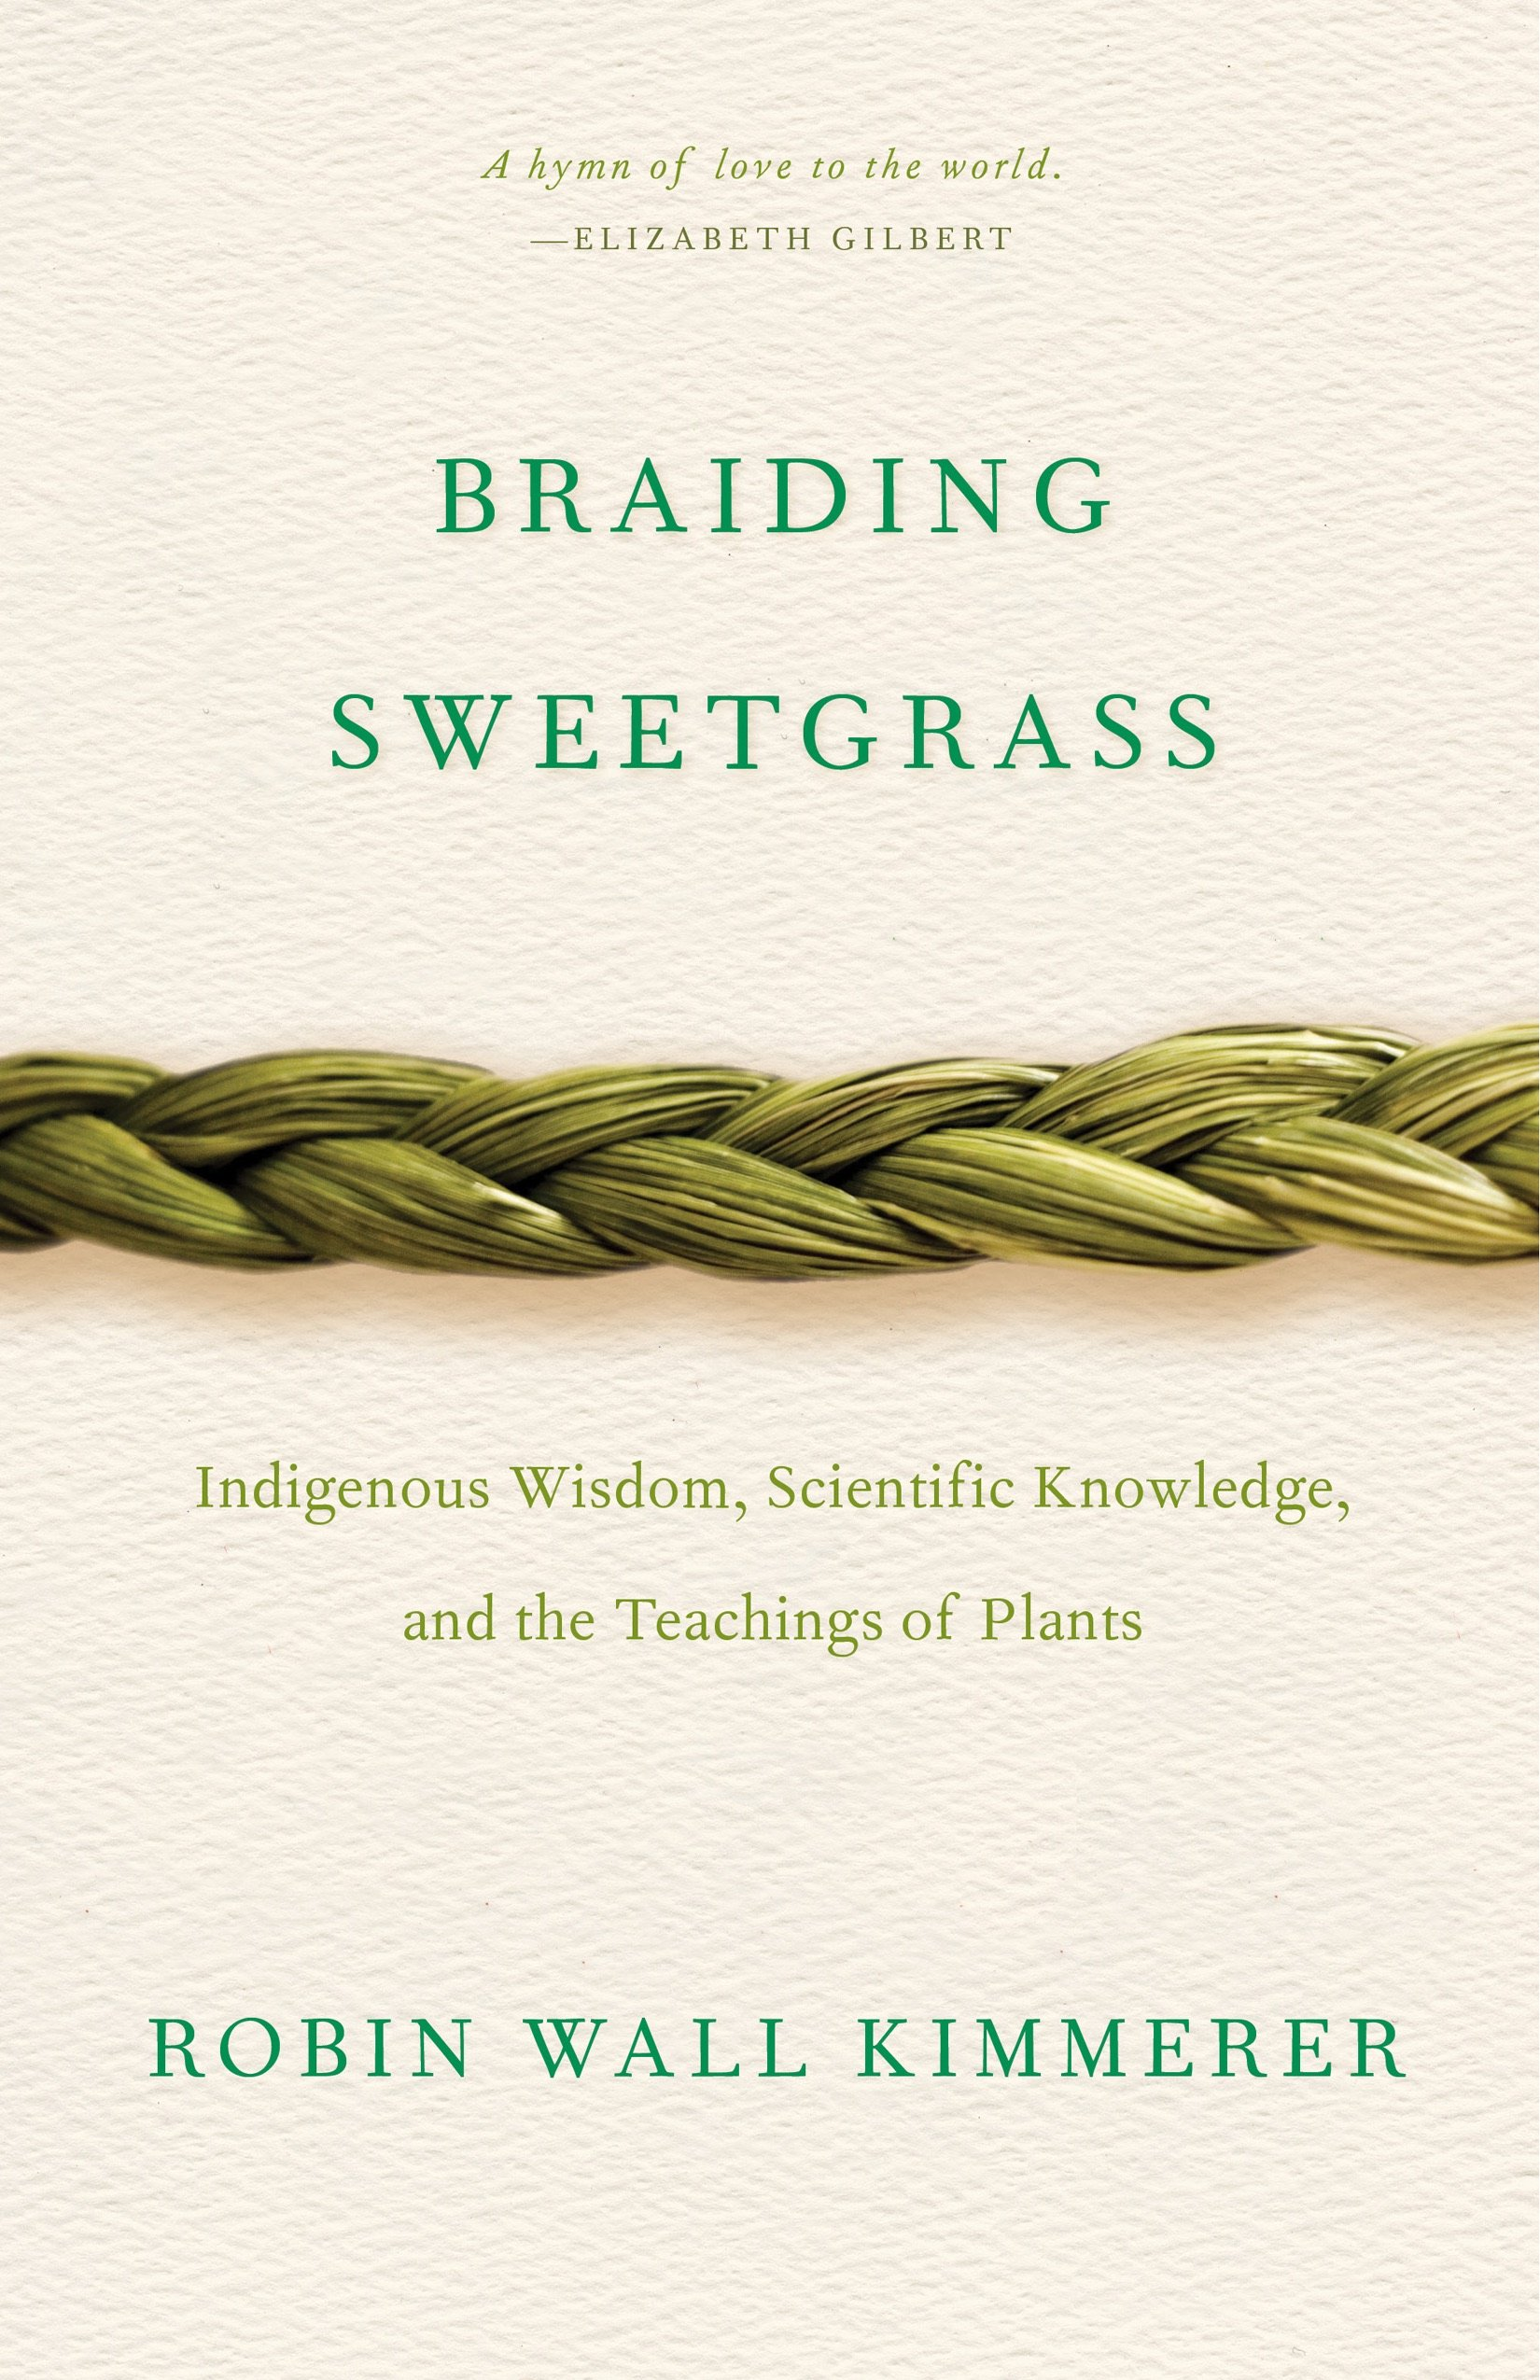 "Braiding Sweetgrass - by Robin Wall Kimmerer""This book was recommended to me by a fellow GreenWorker and, even though I've just started it, I'm captivated. Kimmerer's prose weaves together her botanist background, Potawatomi Nation culture, and her experience as a mother, creating a powerful book that challenges us to look at plants, culture and ourselves through a new lens.""- Kelly Stoecklein, Landscape Designer"